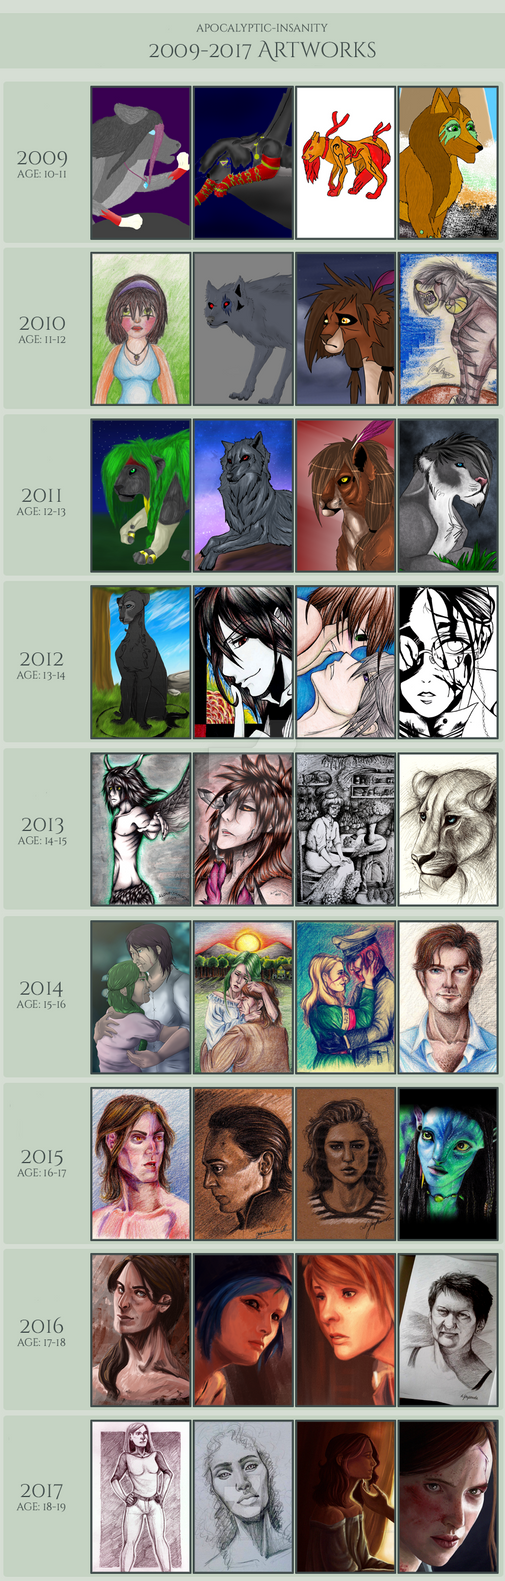 Improvement Meme - 2009-2017 by apocalyptic-insanity